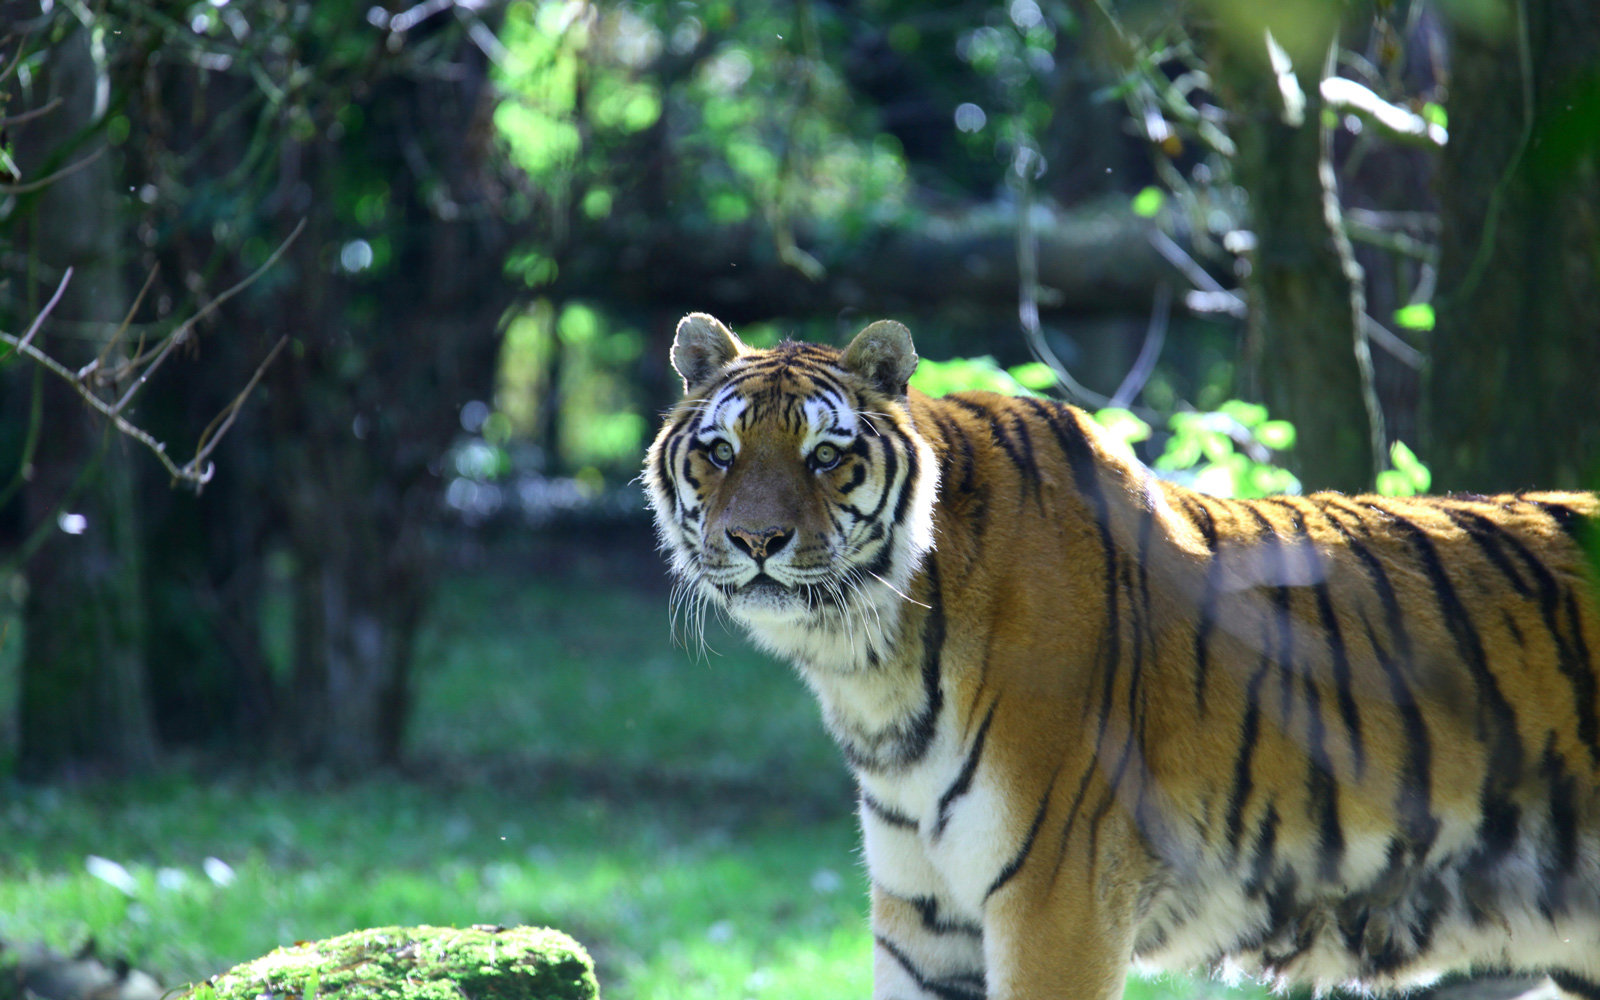 A Tiger at Port Lympne Reserve.